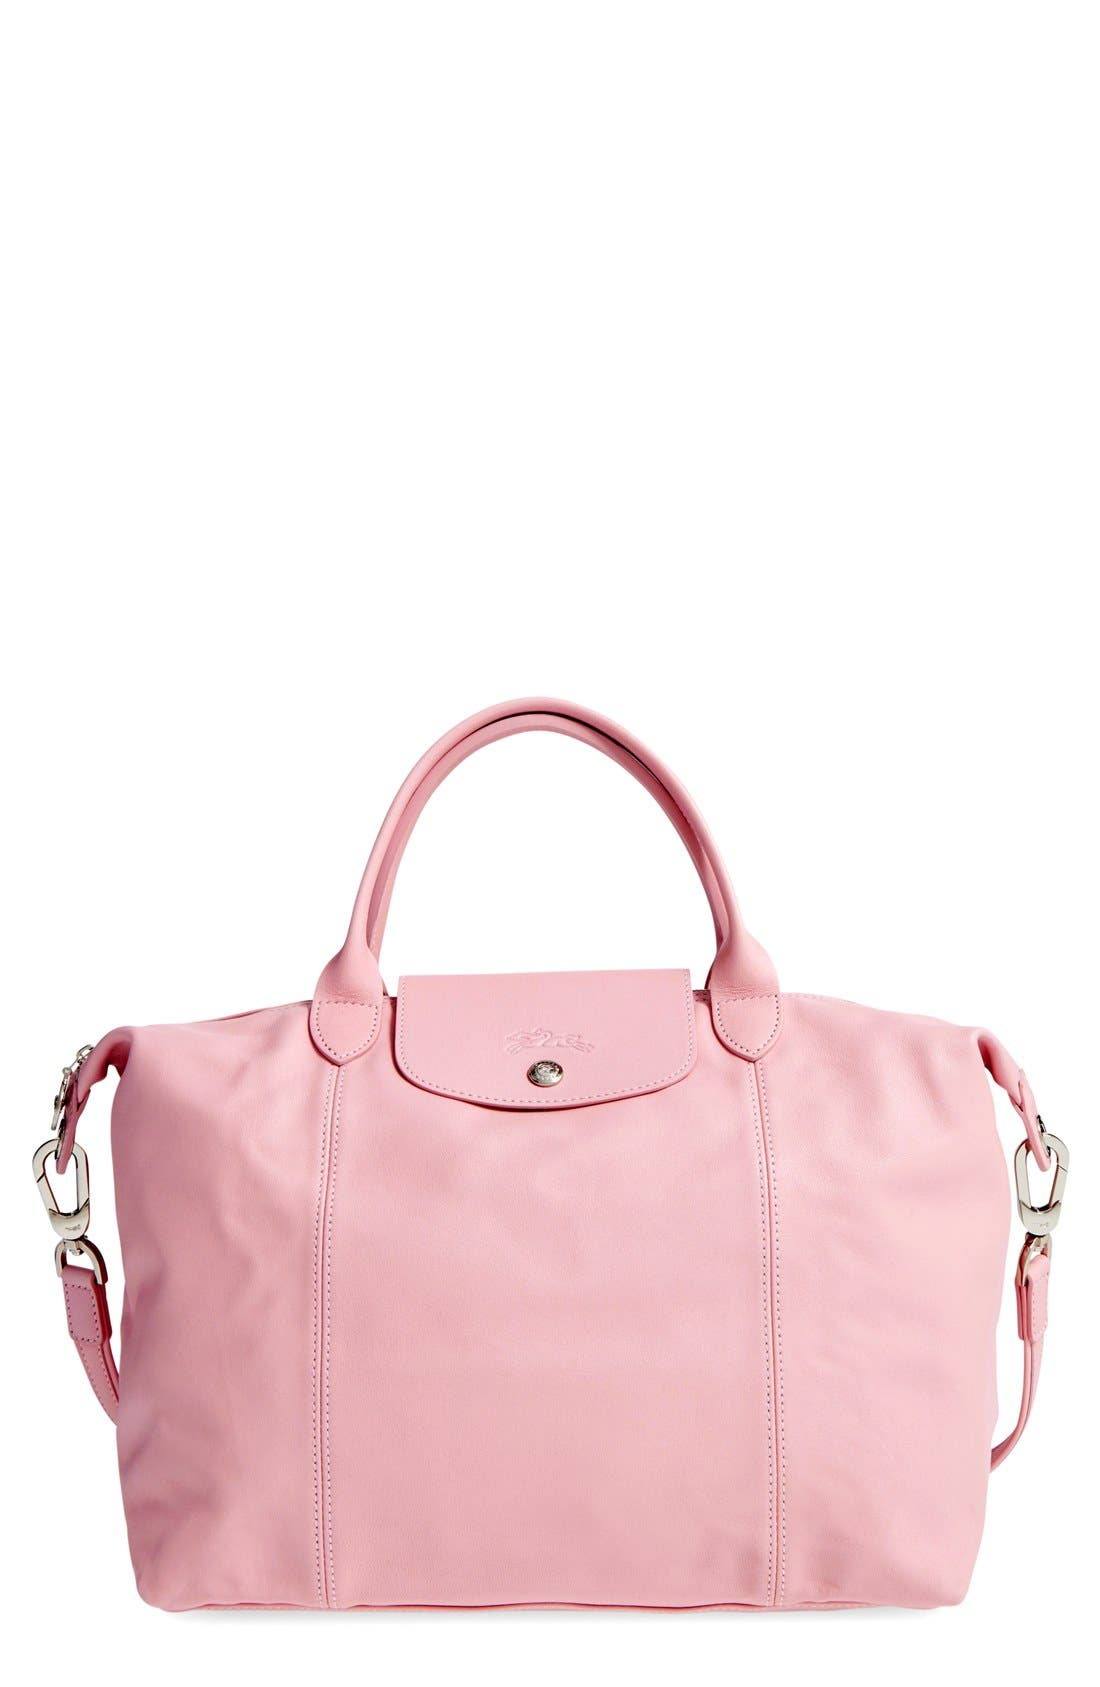 Medium 'Le Pliage Cuir' Leather Top Handle Tote,                             Main thumbnail 30, color,